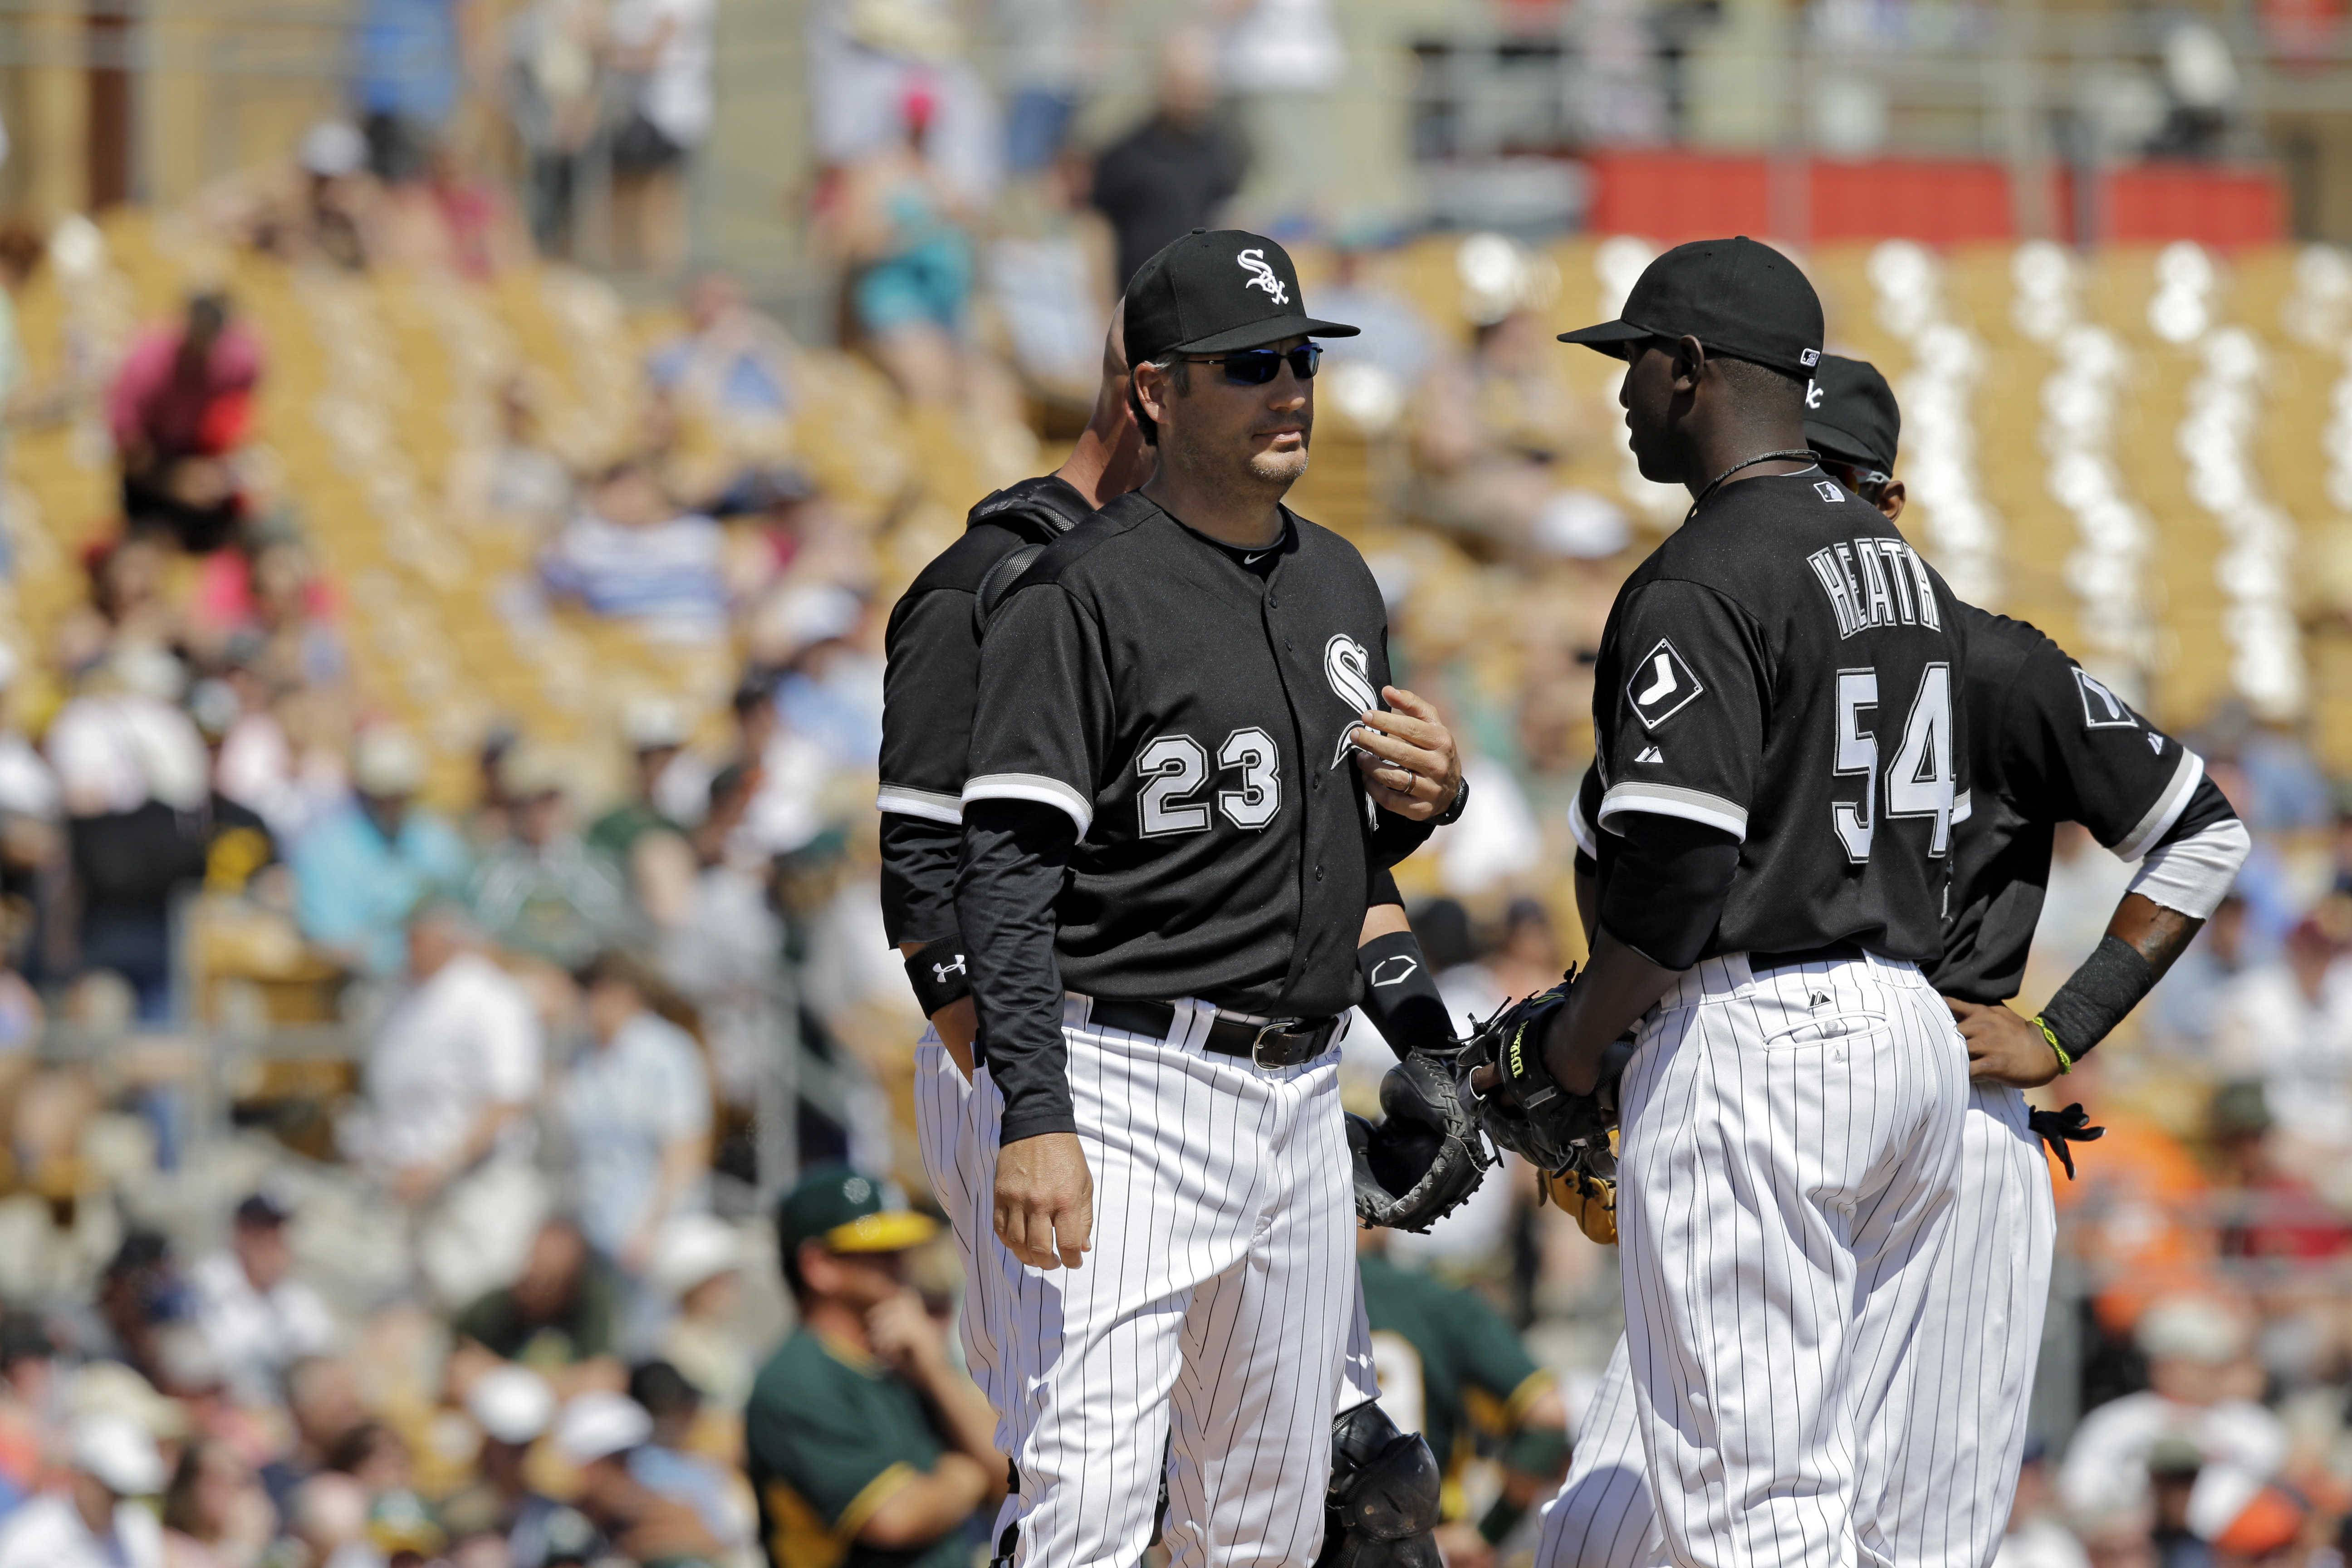 Chicago White Sox manager Robin Ventura (23) talks to relief pitcher Deunte Heath (54) in a spring exhibition baseball game against the Oakland Athletics earlier this month in Glendale, Ariz.